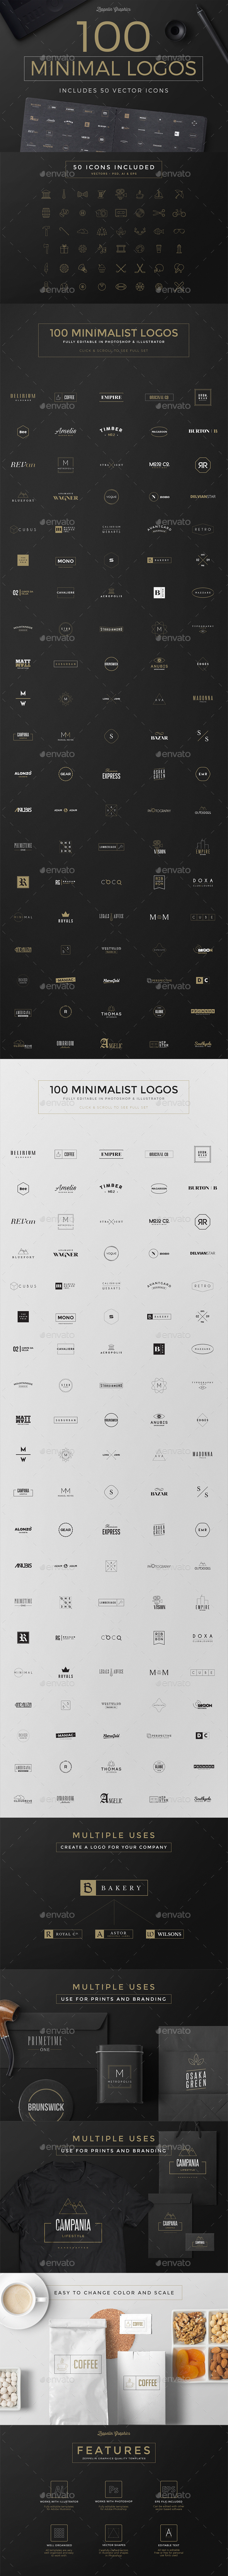 100 Minimal Logos - Badges & Stickers Web Elements